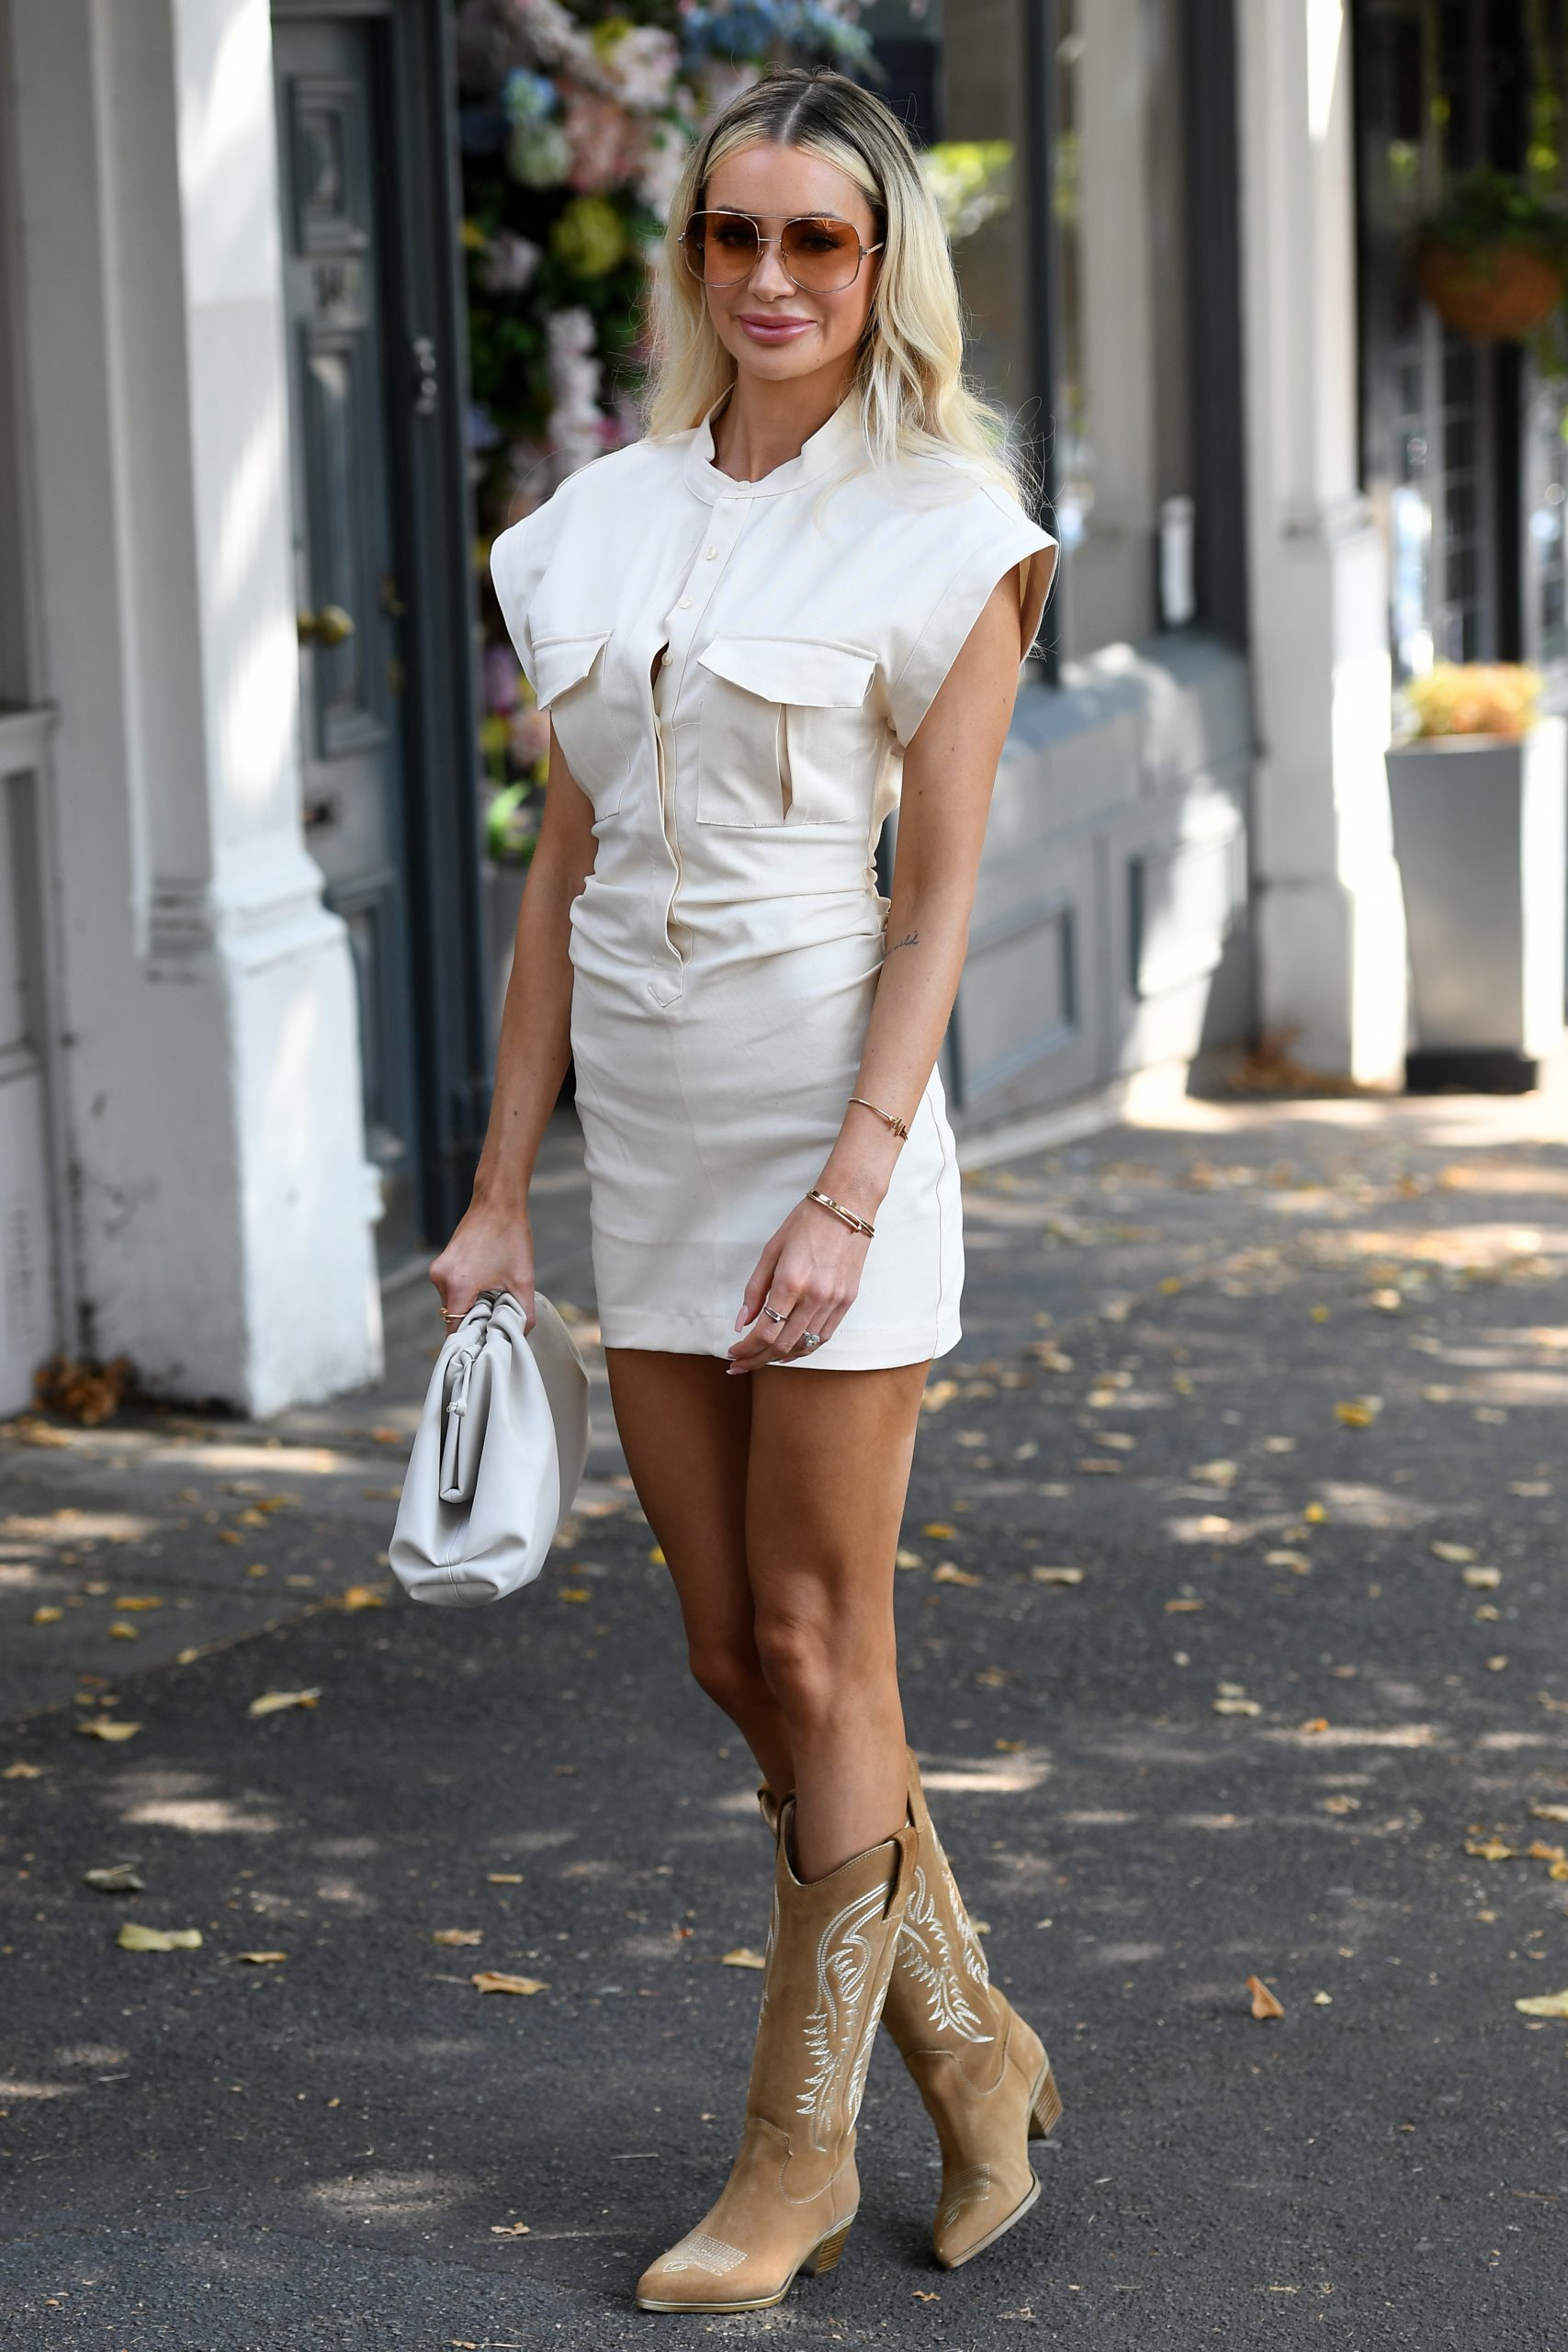 Olivia Attwood 2020 : Olivia Attwood – Leggy in white dress while out in London-06